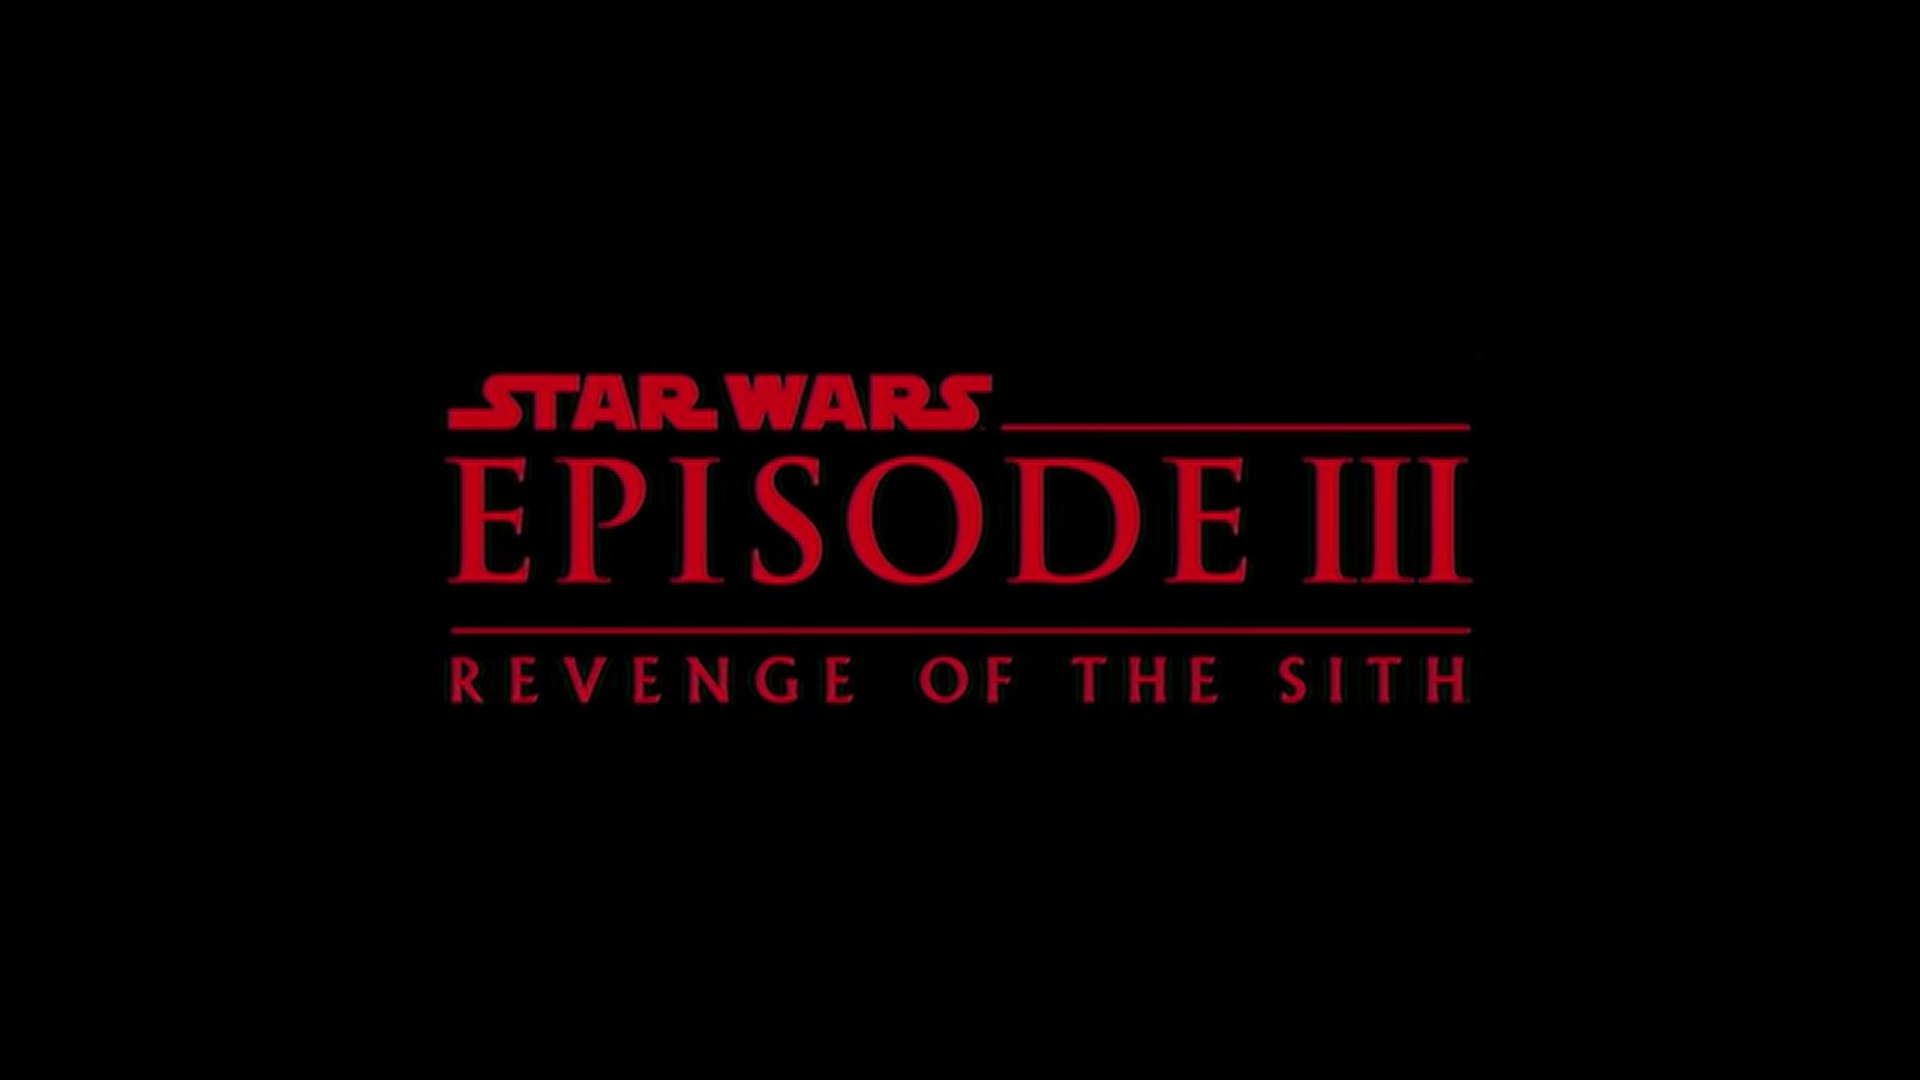 Star Wars Iii Revenge Of The Sith 2005 Trailer Hd Video Dailymotion